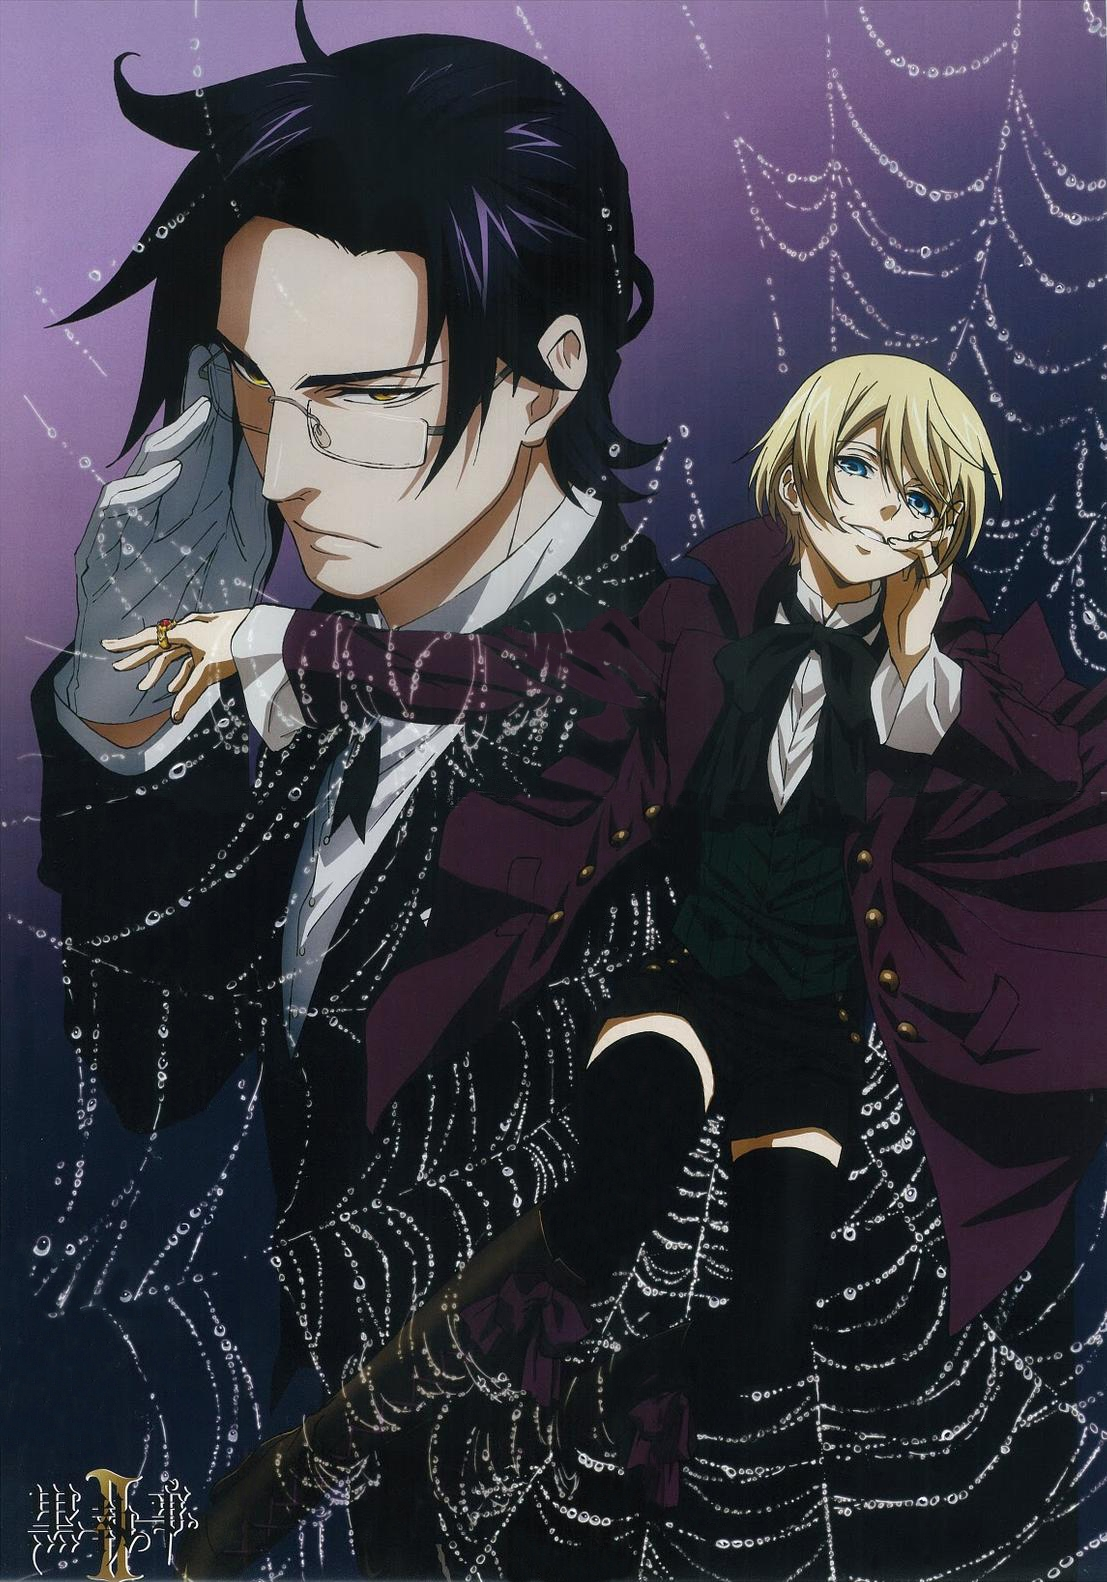 Gloves, Black Thigh Highs, Short Hair, Black Hair, Ring, Duo, Claude Faustus, Two Males, Male, Gold Eyes, Demon, Boots, Alois Trancy, Tie, Thigh Highs, Suit, Spider Web, Jewelry, Grin, Glasses, Bows (Fashion), Bow Tie, Blue Eyes, Blonde Hair, Kuroshitsuji